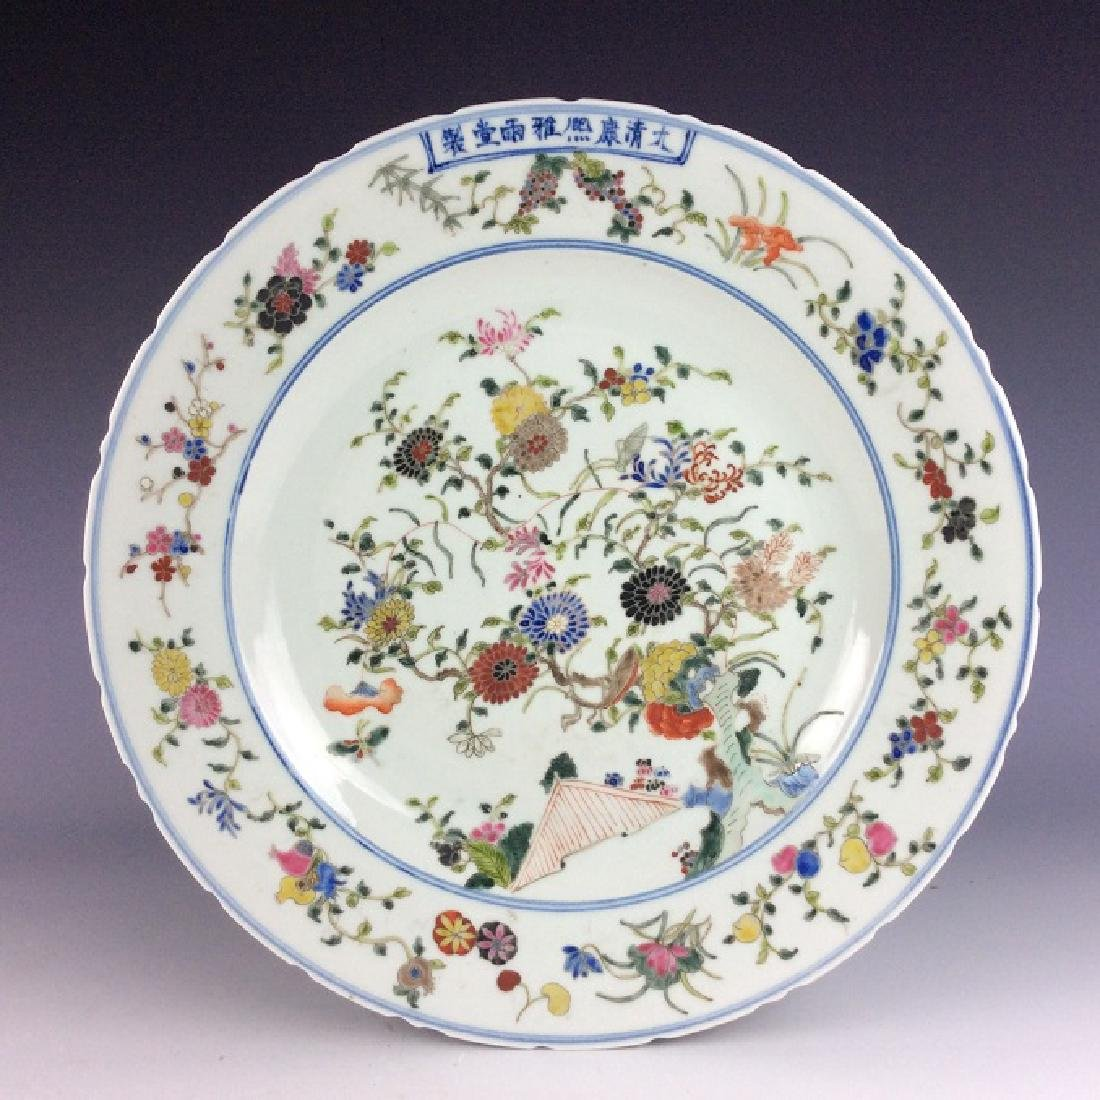 Fine Chinese porcelain plate, famille rose glazed,